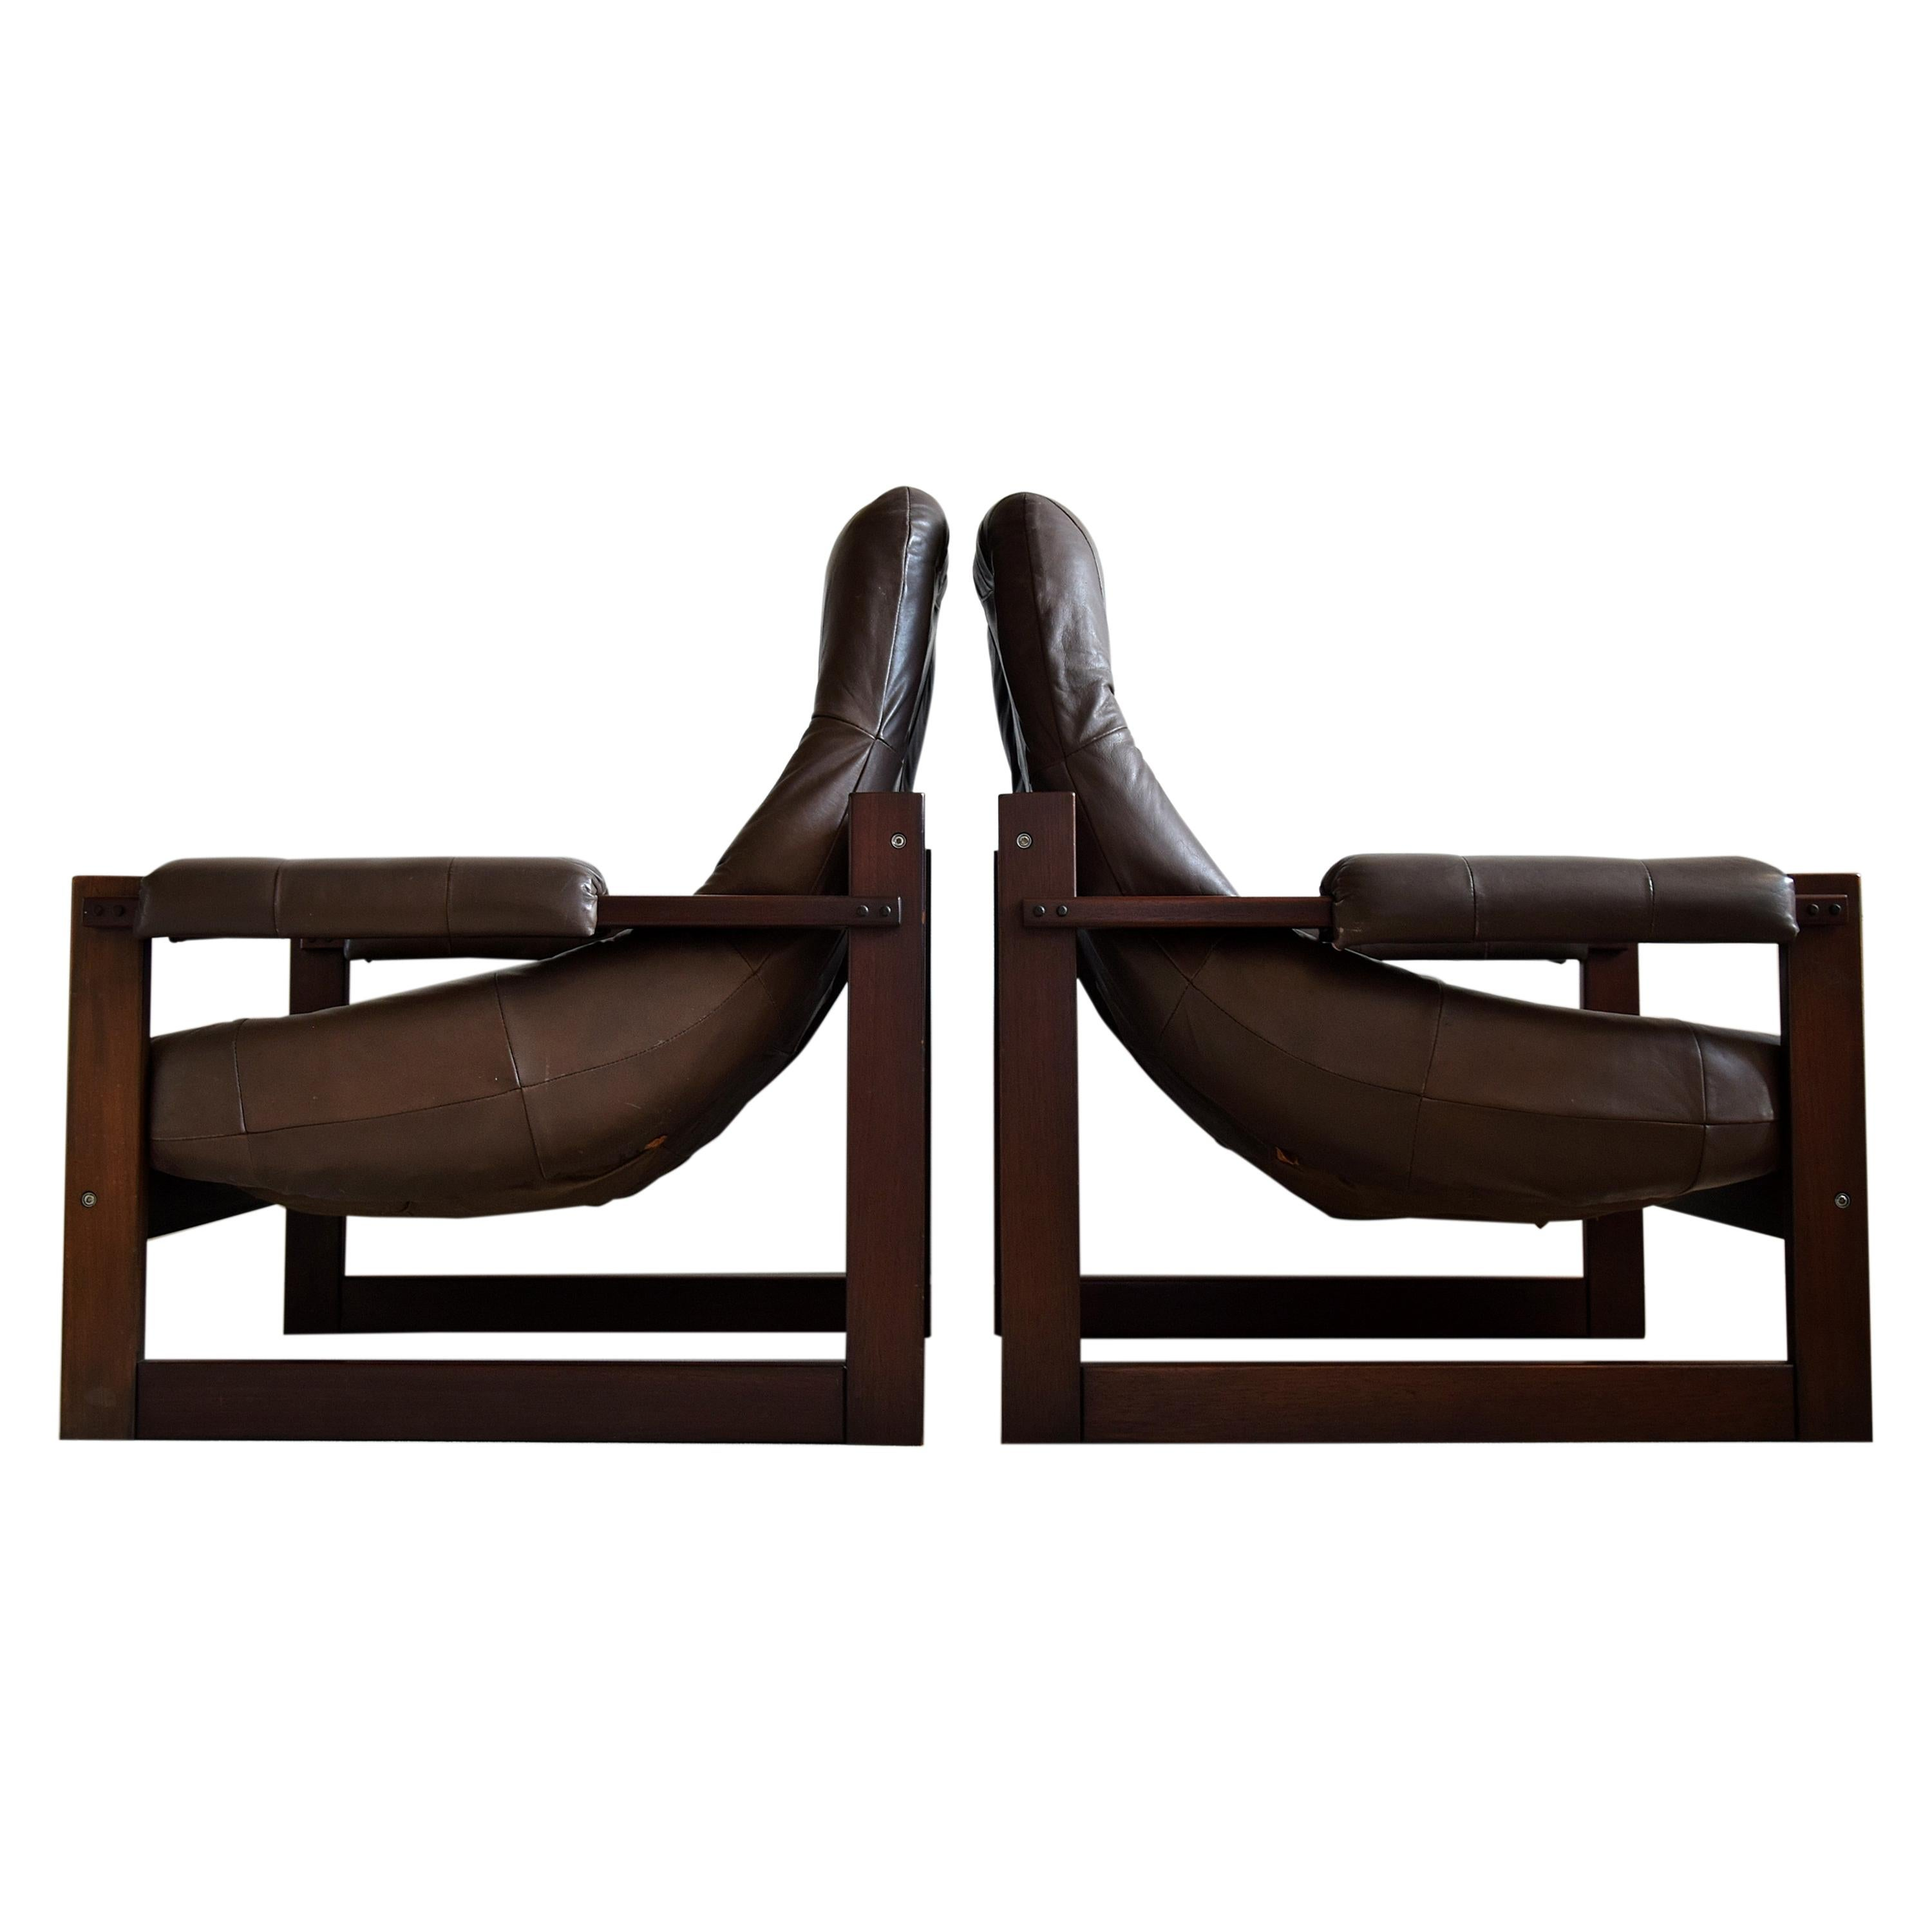 Percival Lafer Mid-Century Modern Brazilian Mahogany and Leather Lounge Chairs